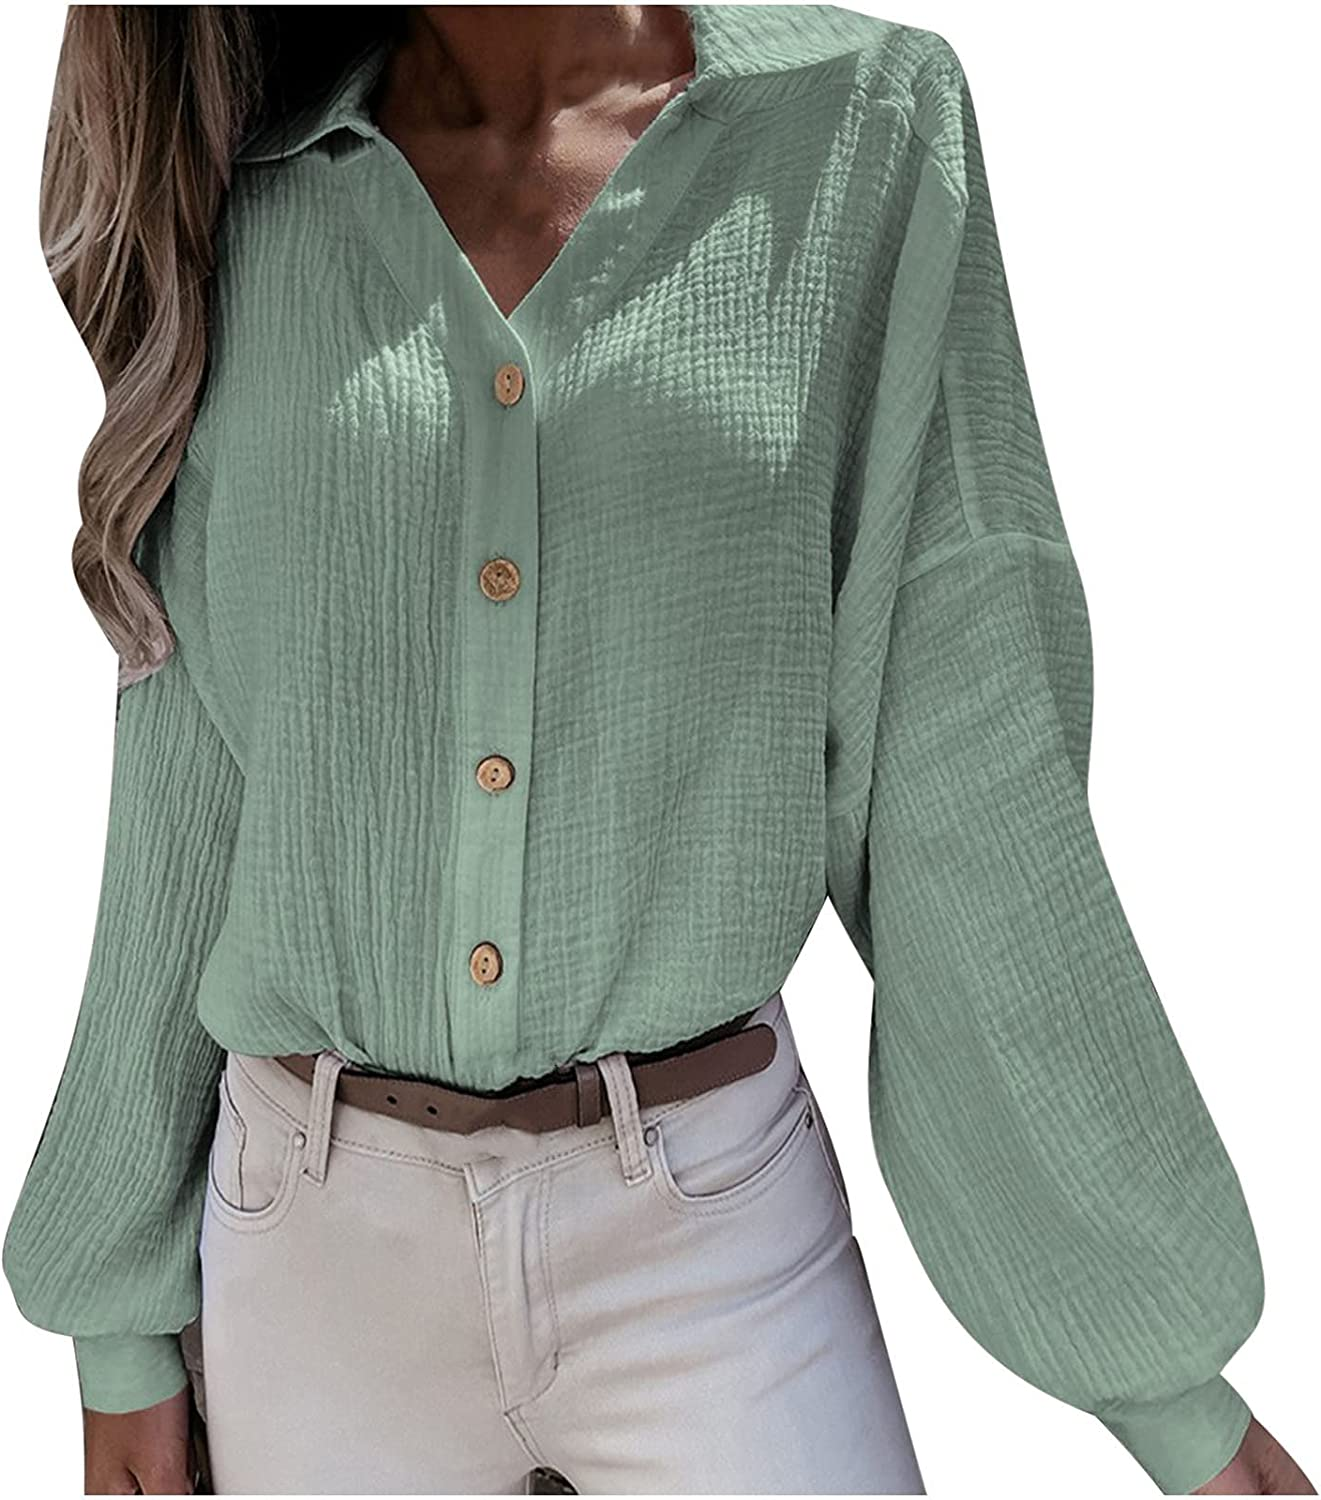 Women Business Casual Store Tops Solid Cardigan V-Neck Down Fas online shopping Button